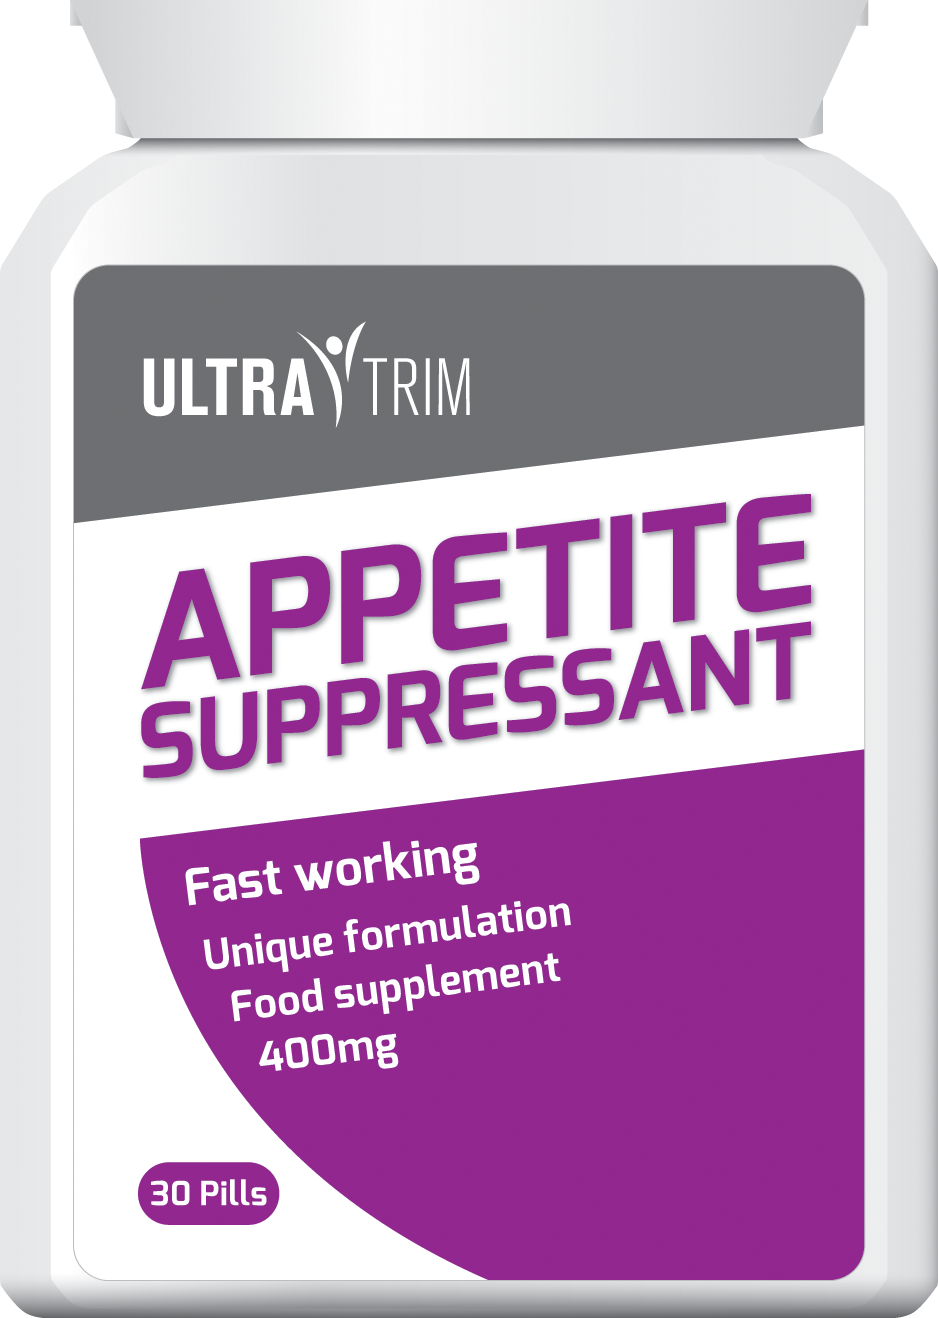 ULTRA TRIM APPETITE SUPPRESSANT PILL